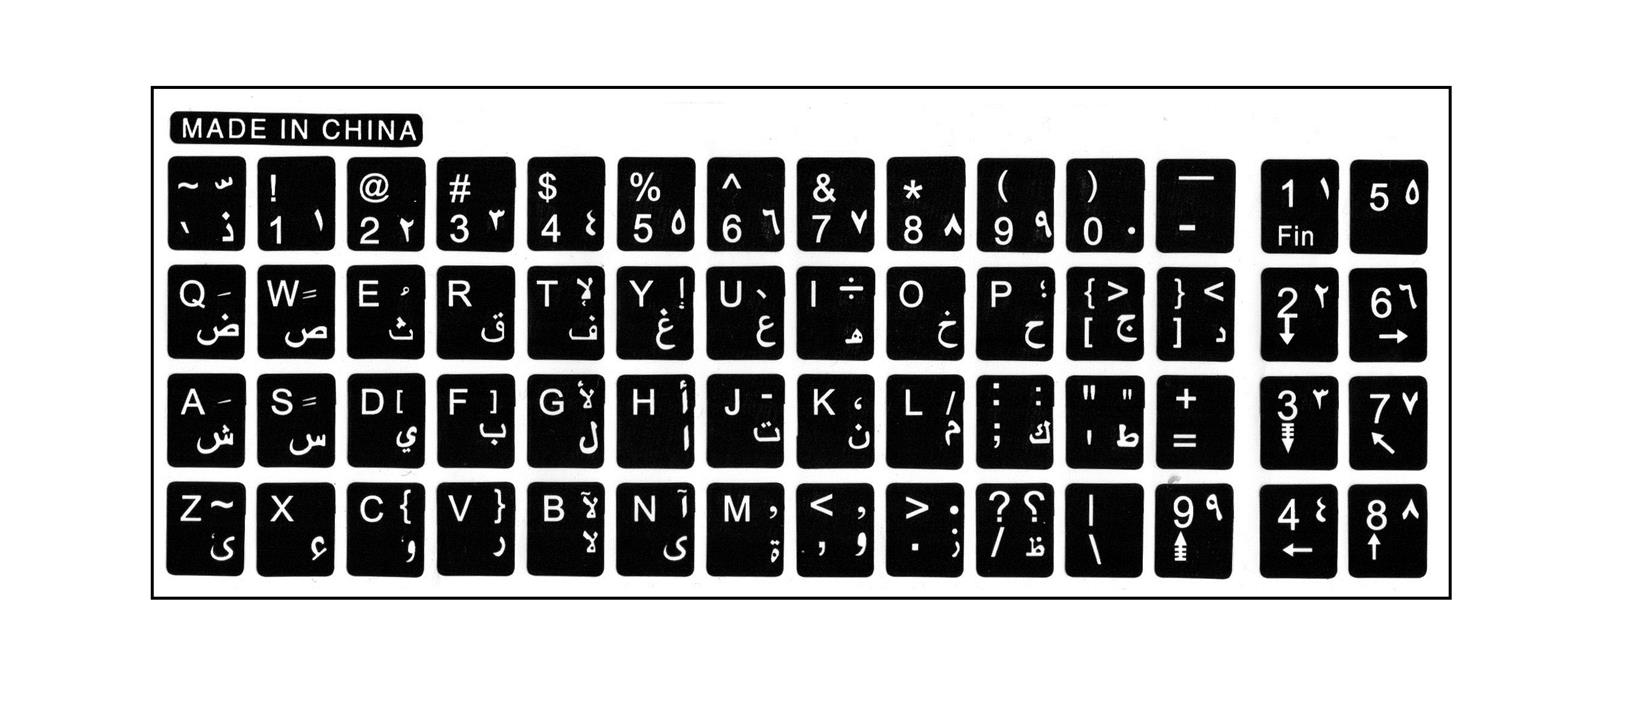 Jawi Arabic keyboard Sticker for PC , Laptop